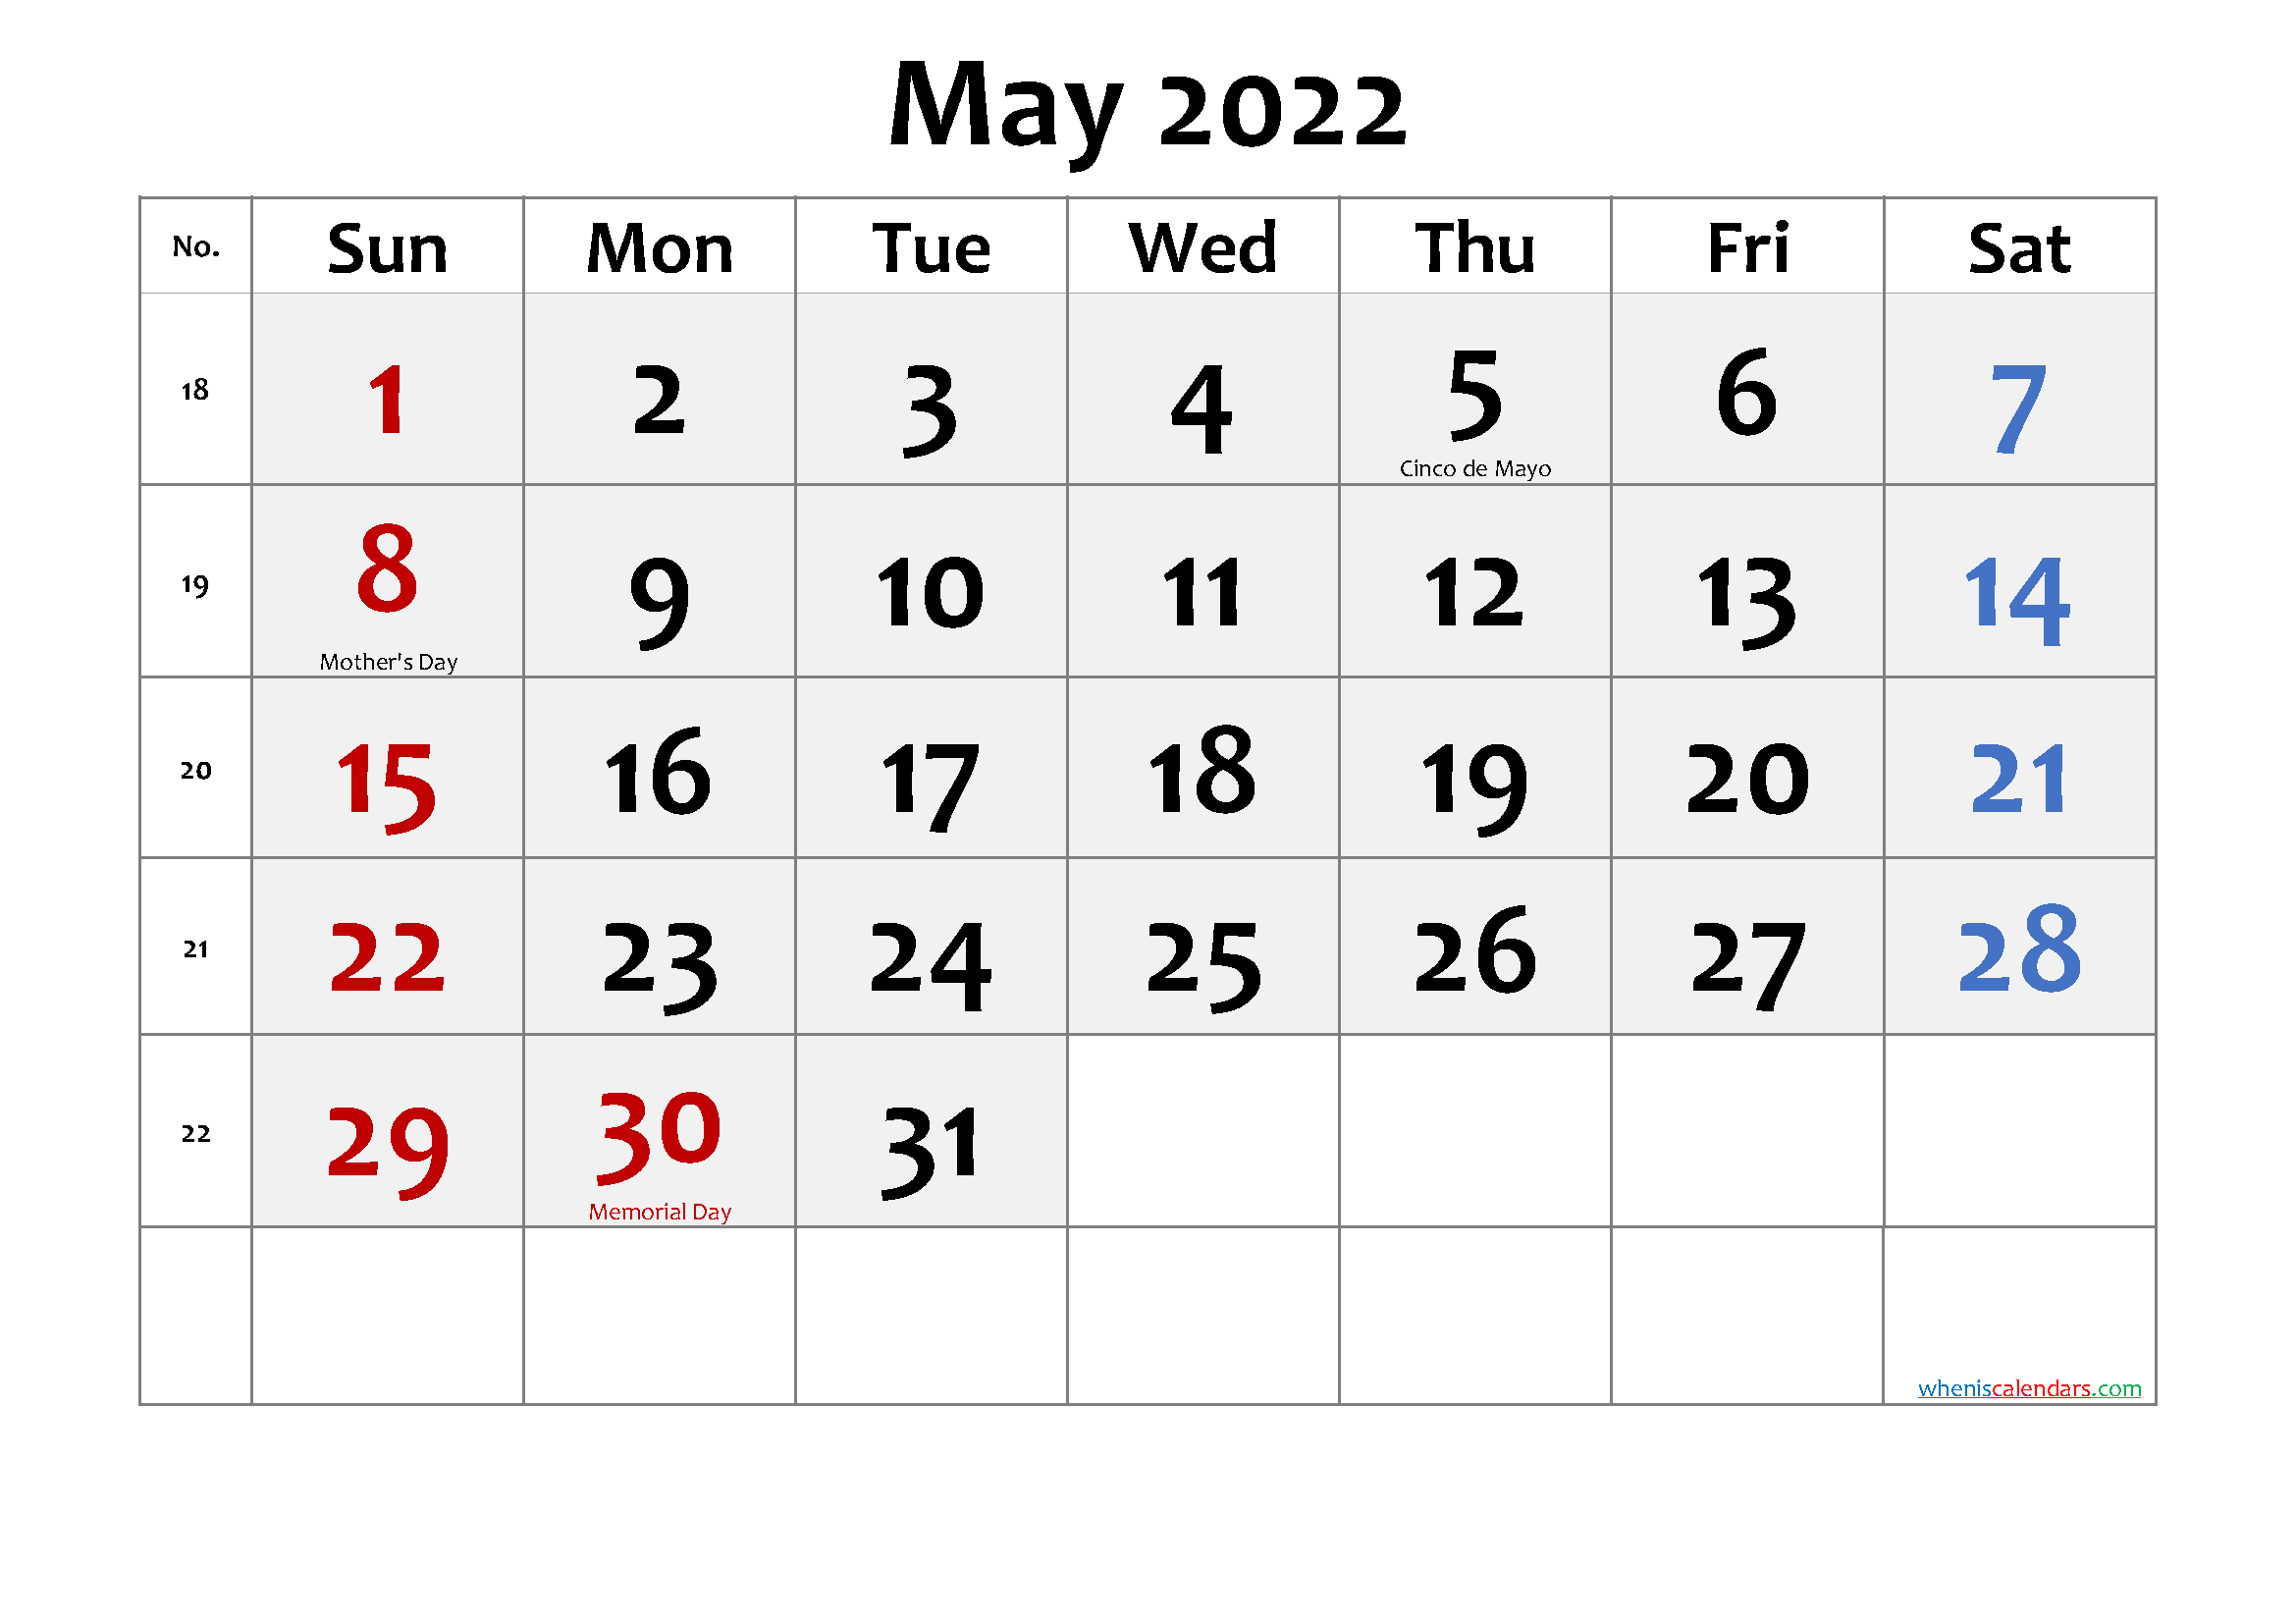 May 2022 Monthly Calendar.Free Printable 2022 Monthly Calendar With Week Numbers Page 63 Calendarex Com